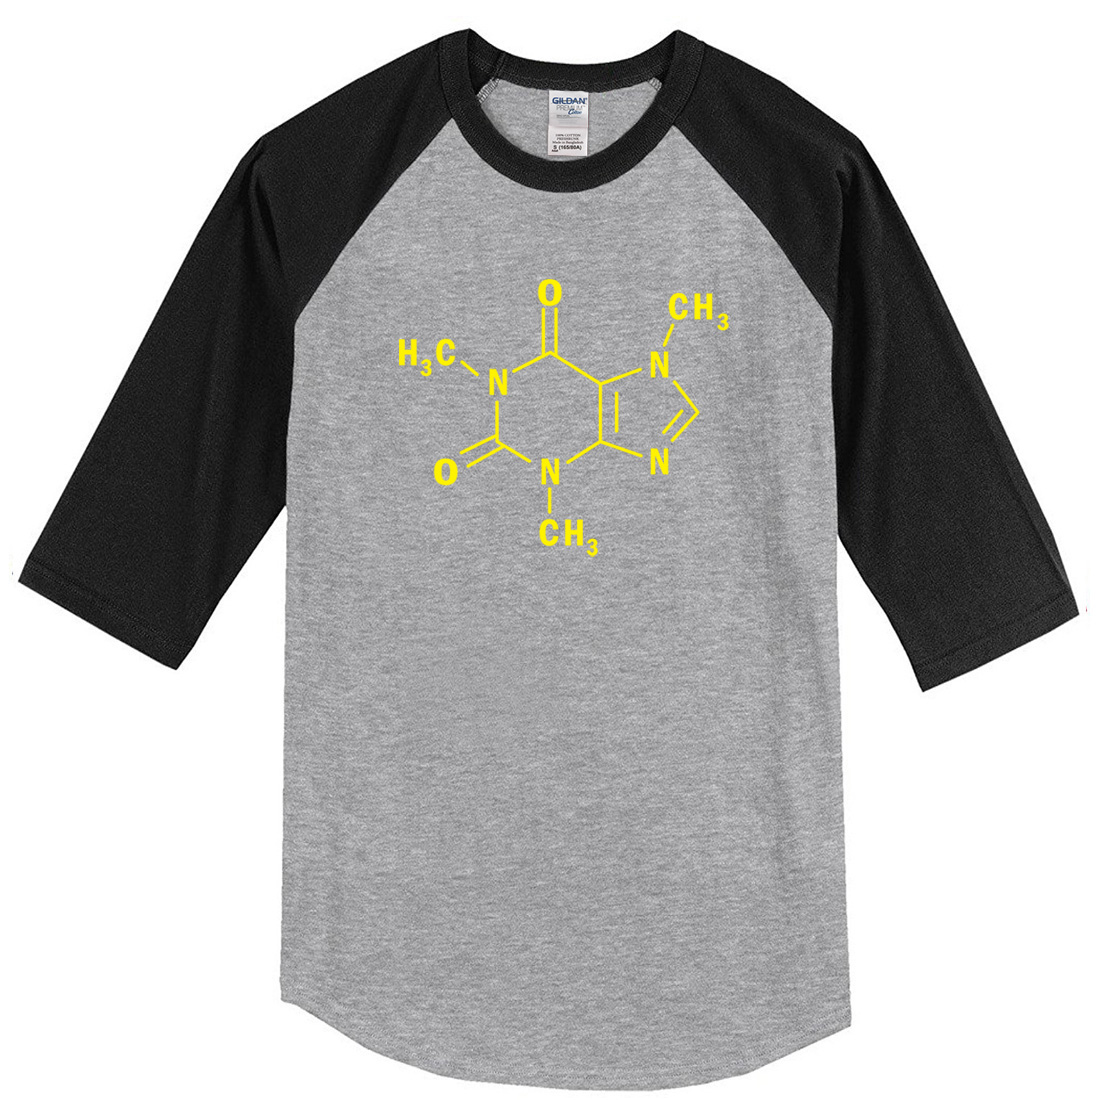 2018 T-shirt summer The Big Bang Theory fashion mens T-shirts Caffeine Molecular Formula Sheldon crossfit t shirt top harajuku